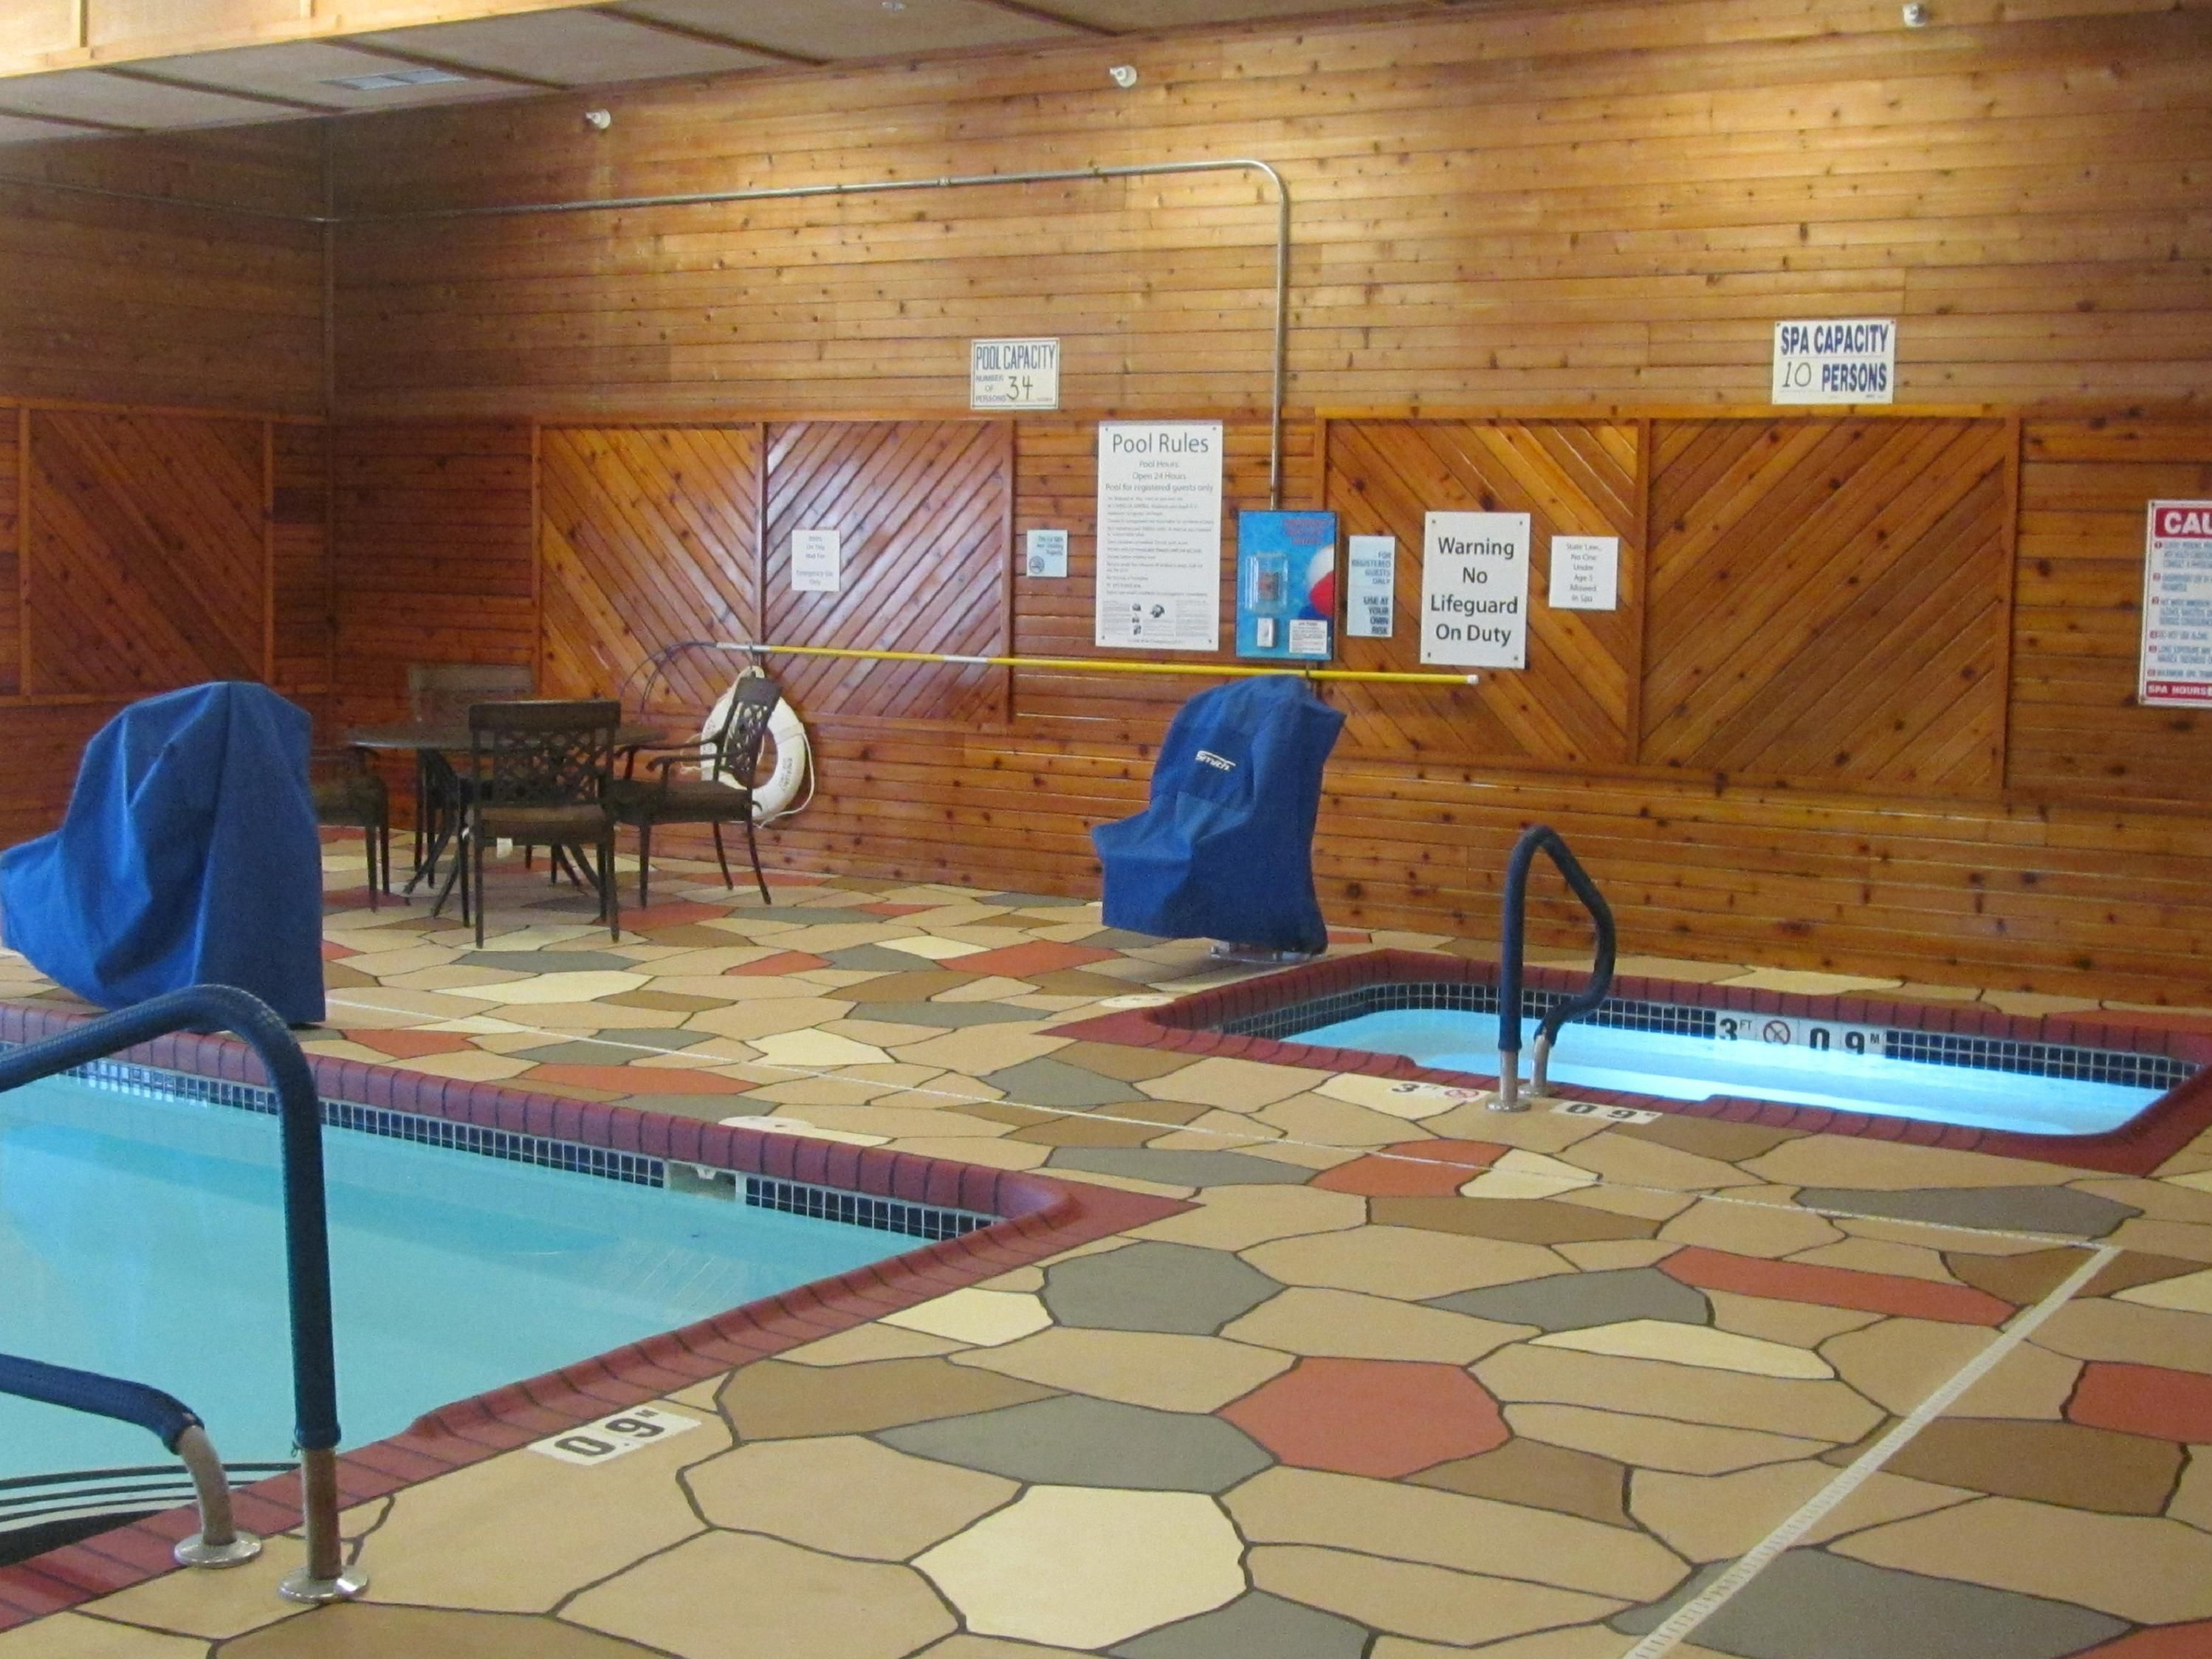 Holiday Inn Express Lexington NE Indoor Pool and Whirlpool